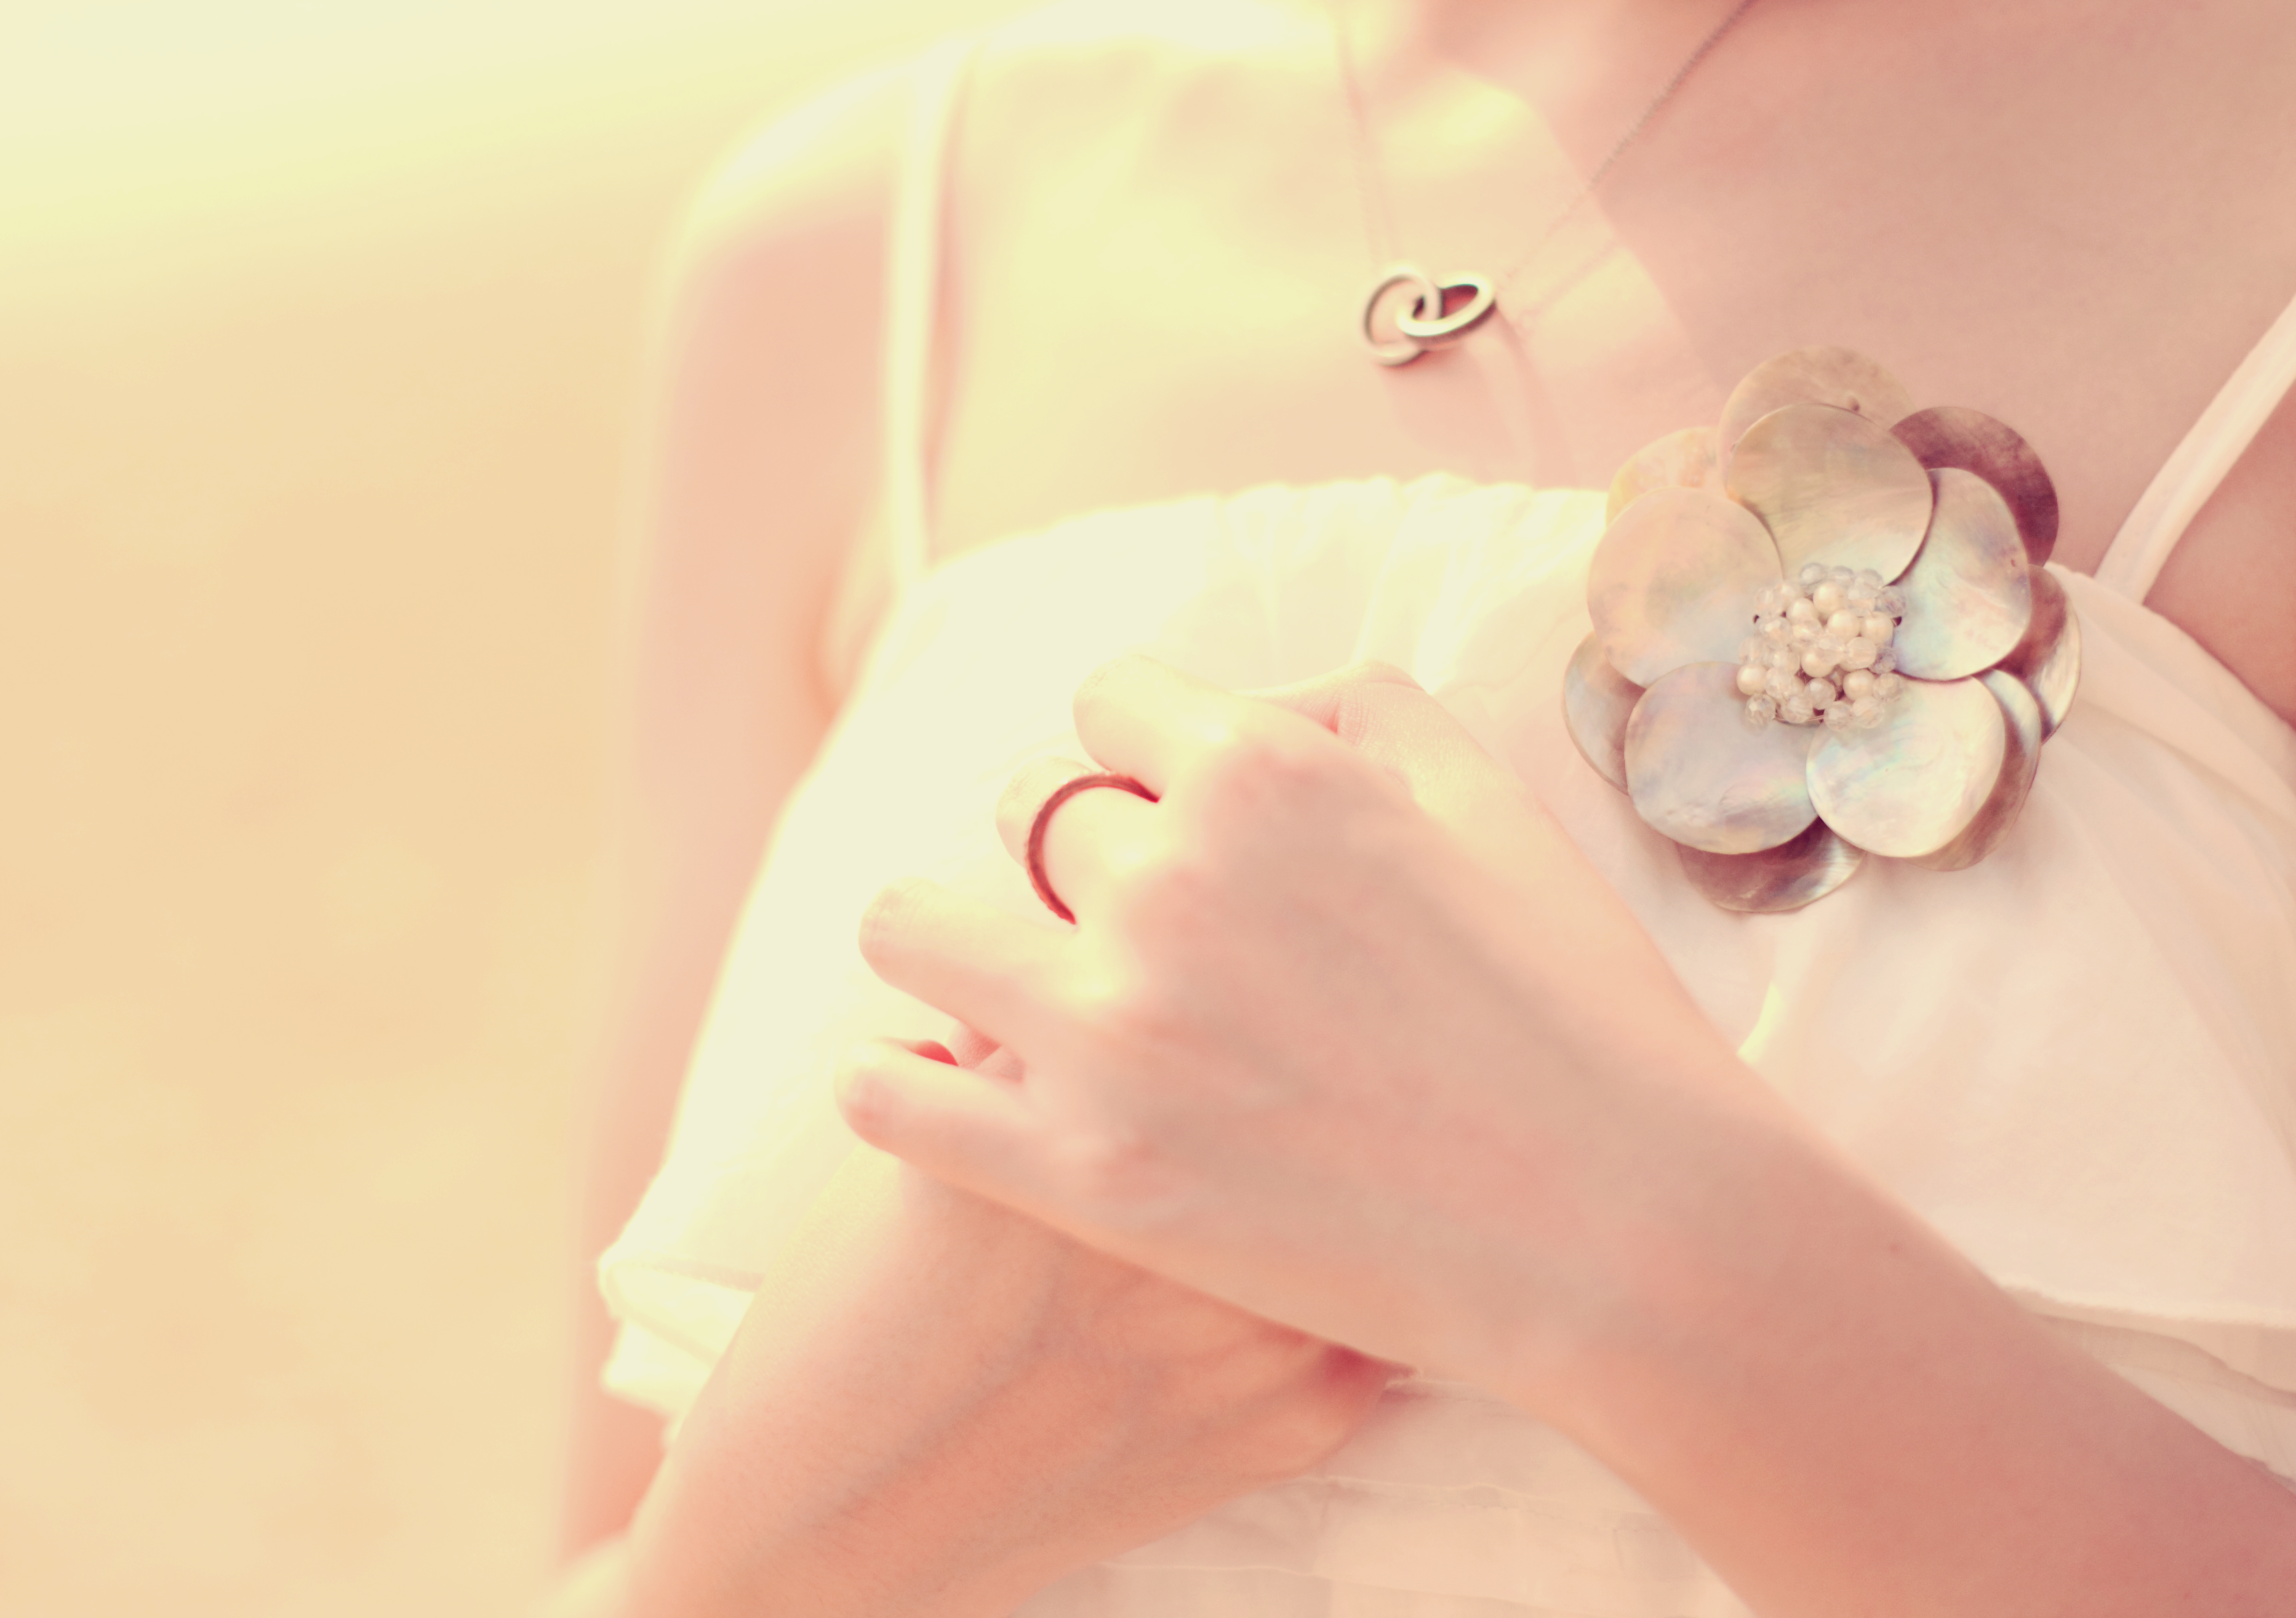 Close up of bride's hands with accessory for dress, retro filter effect